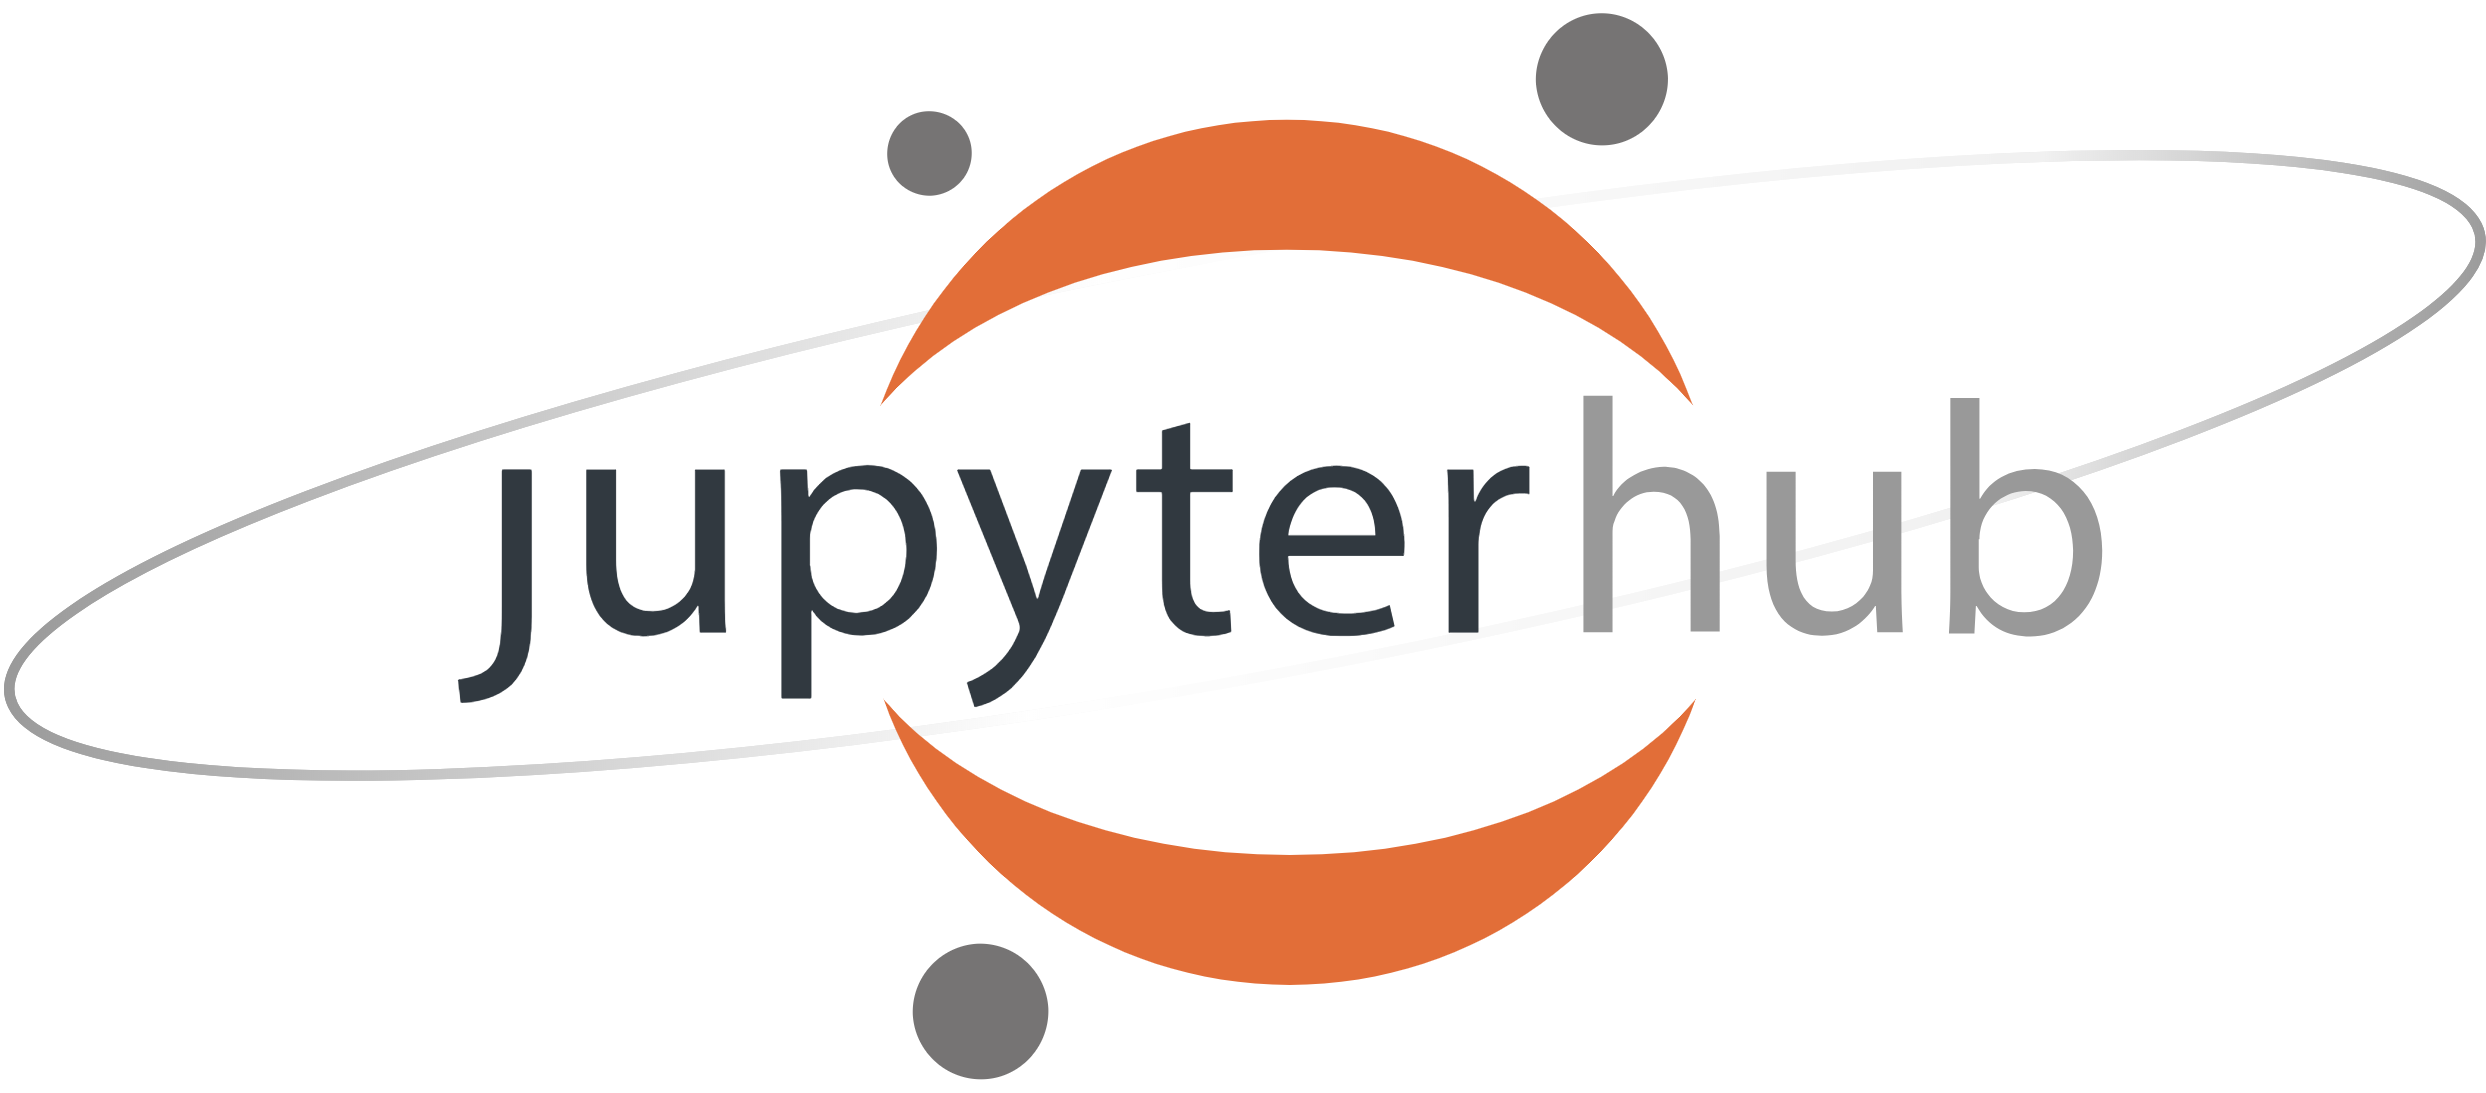 Deploying a containerized JupyterHub server with Docker